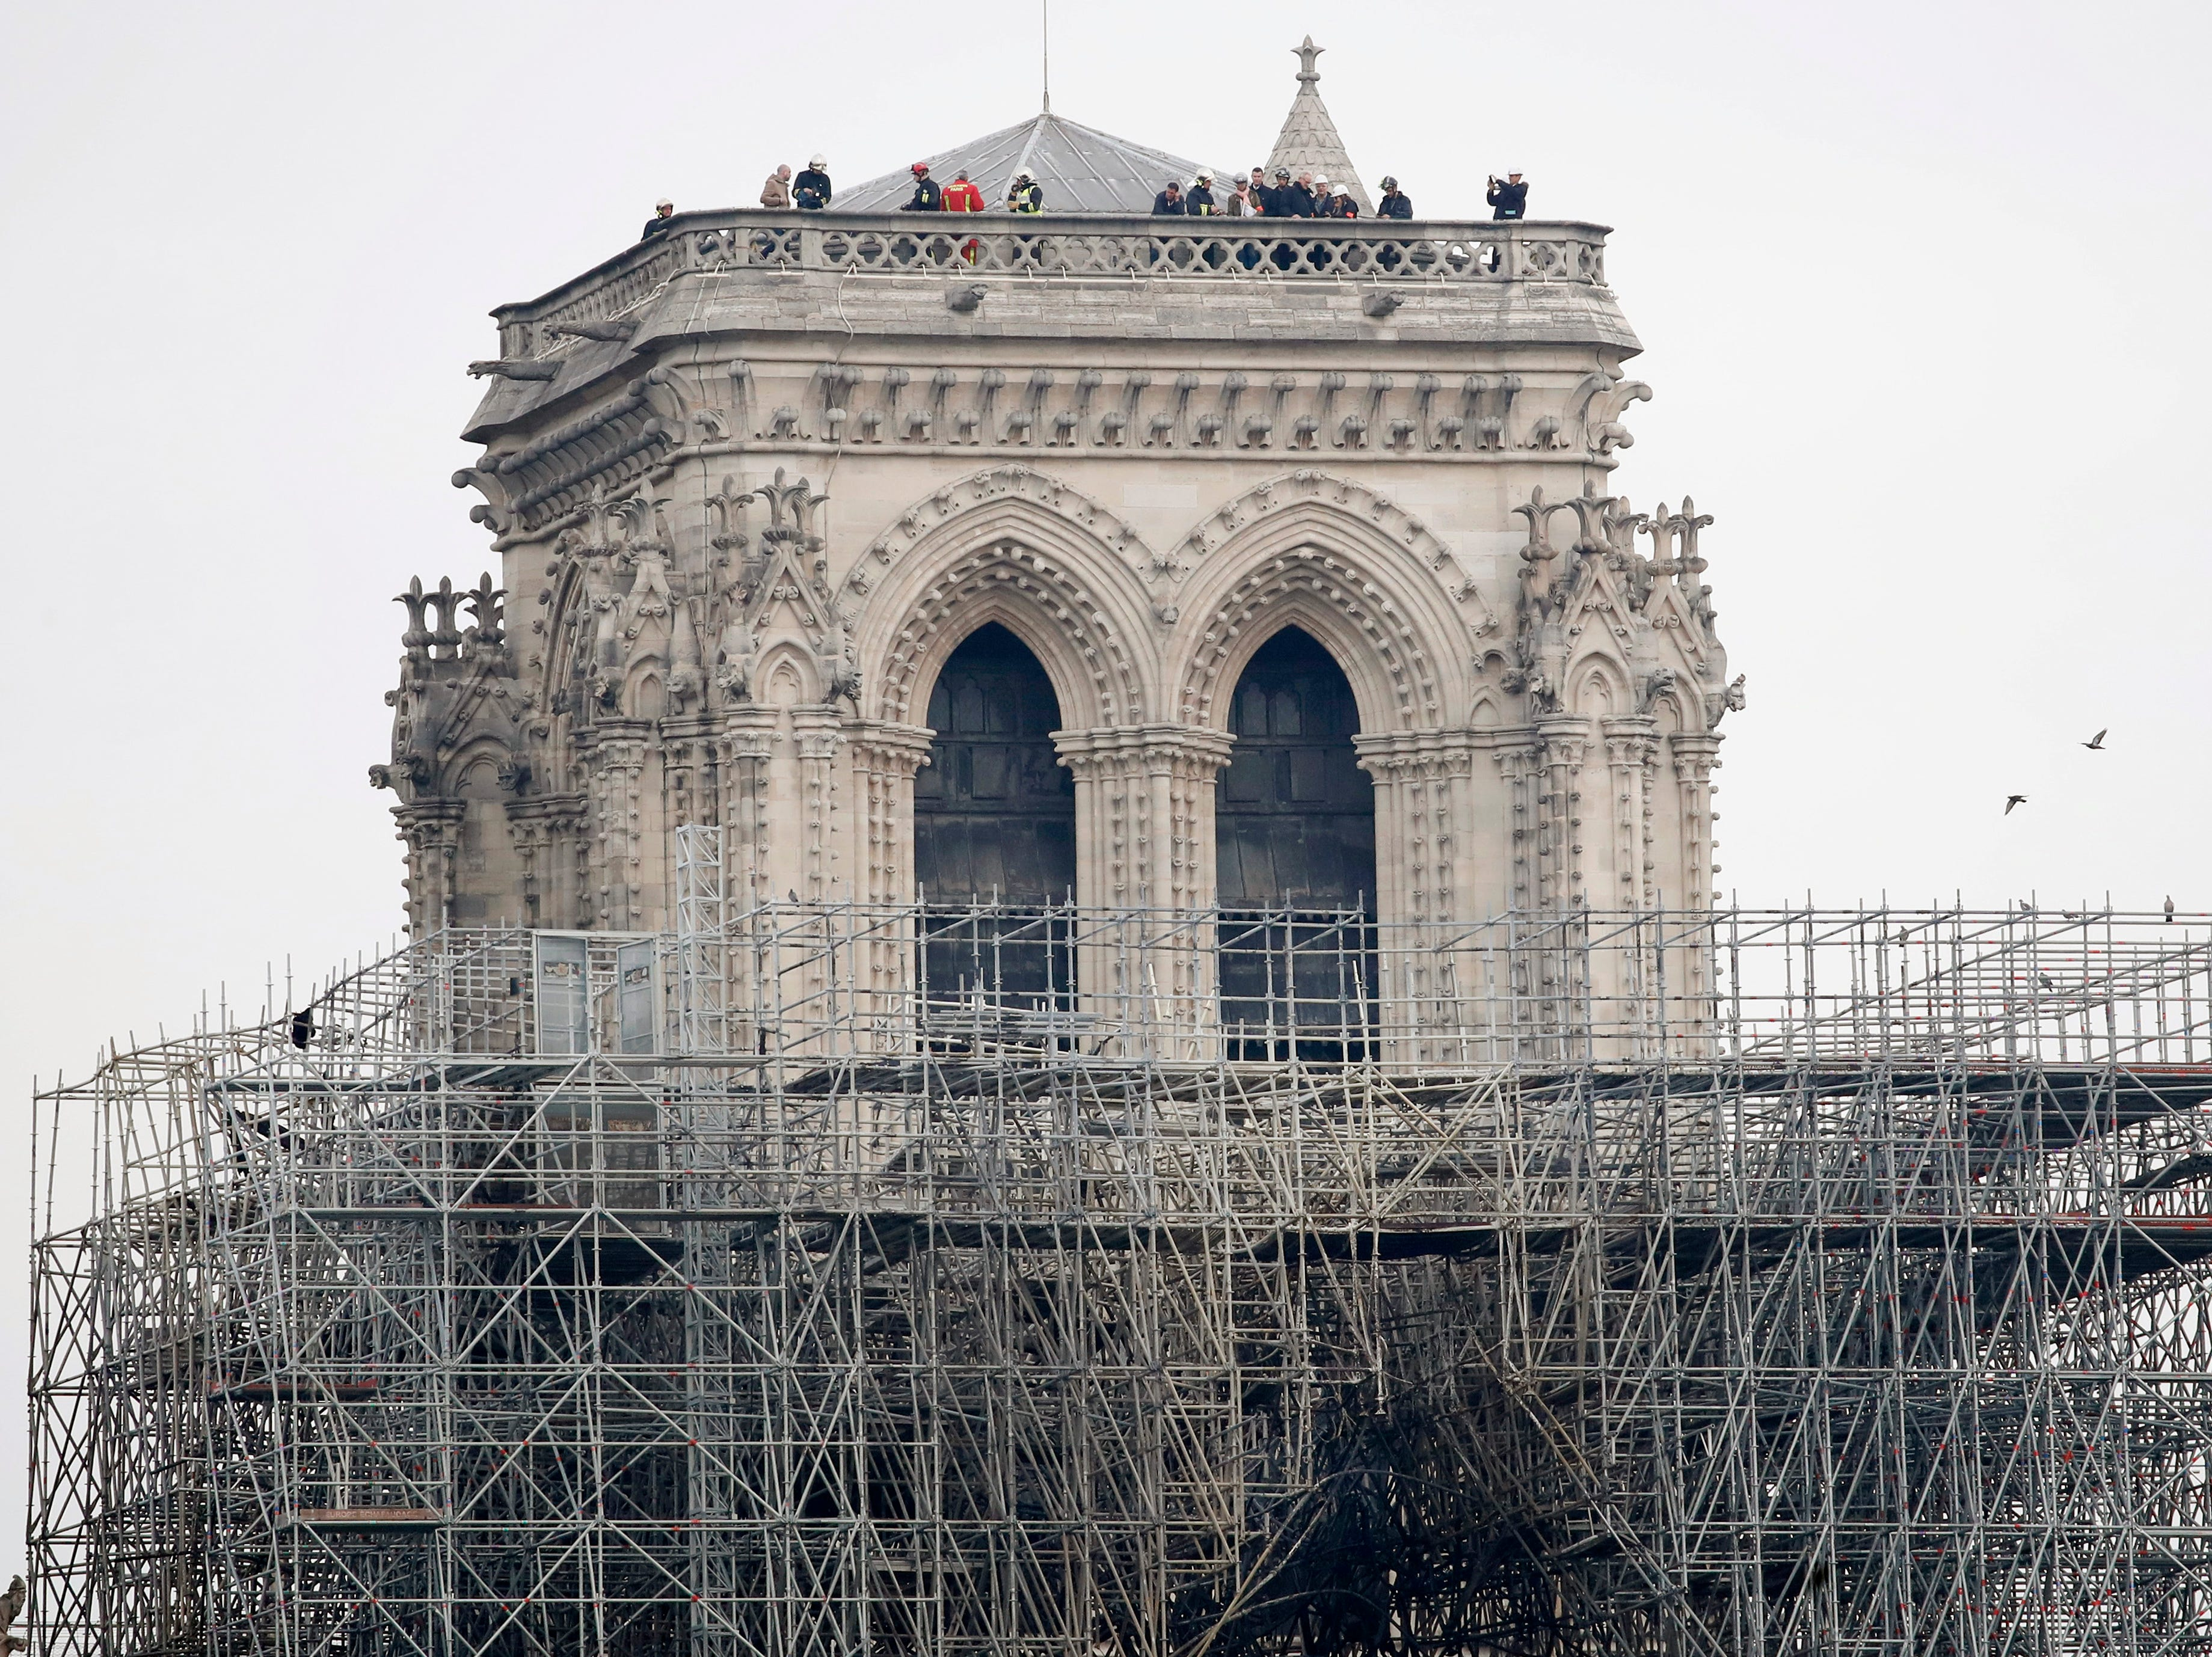 Firemen inspect the Notre Dame cathedral after the fire in Paris, Tuesday, April 16, 2019. Experts are assessing the blackened shell of Paris' iconic Notre Dame cathedral to establish next steps to save what remains after a devastating fire destroyed much of the almost 900-year-old building. With the fire that broke out Monday evening and quickly consumed the cathedral now under control, attention is turning to ensuring the structural integrity of the remaining building. (AP Photo/Christophe Enaa)